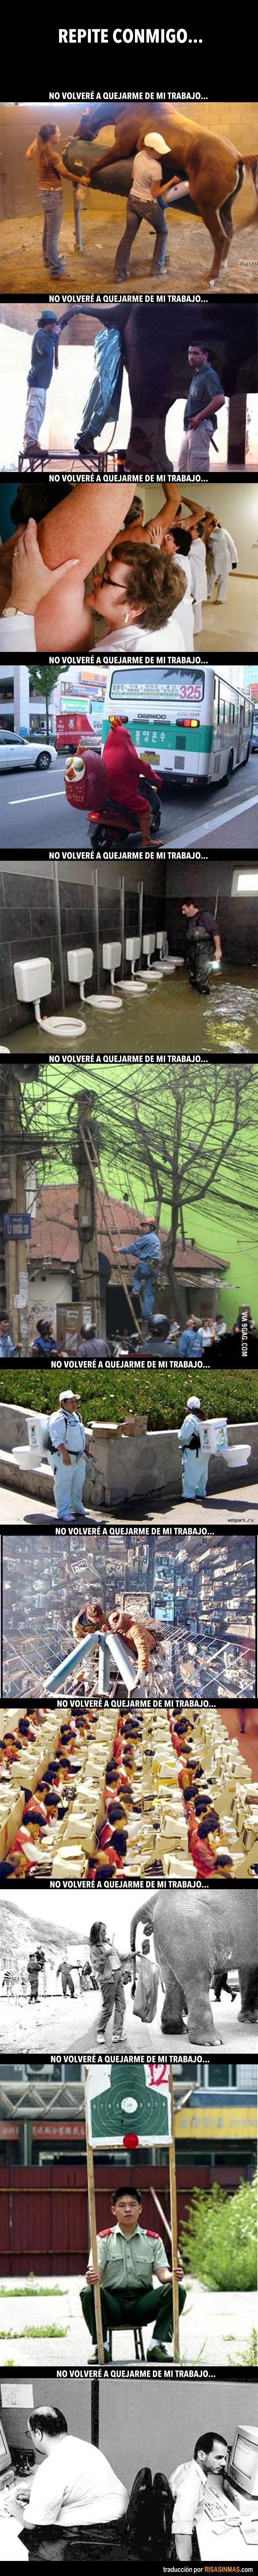 Never again will complain about my job #compartirvideos #watsappss #funnypictures